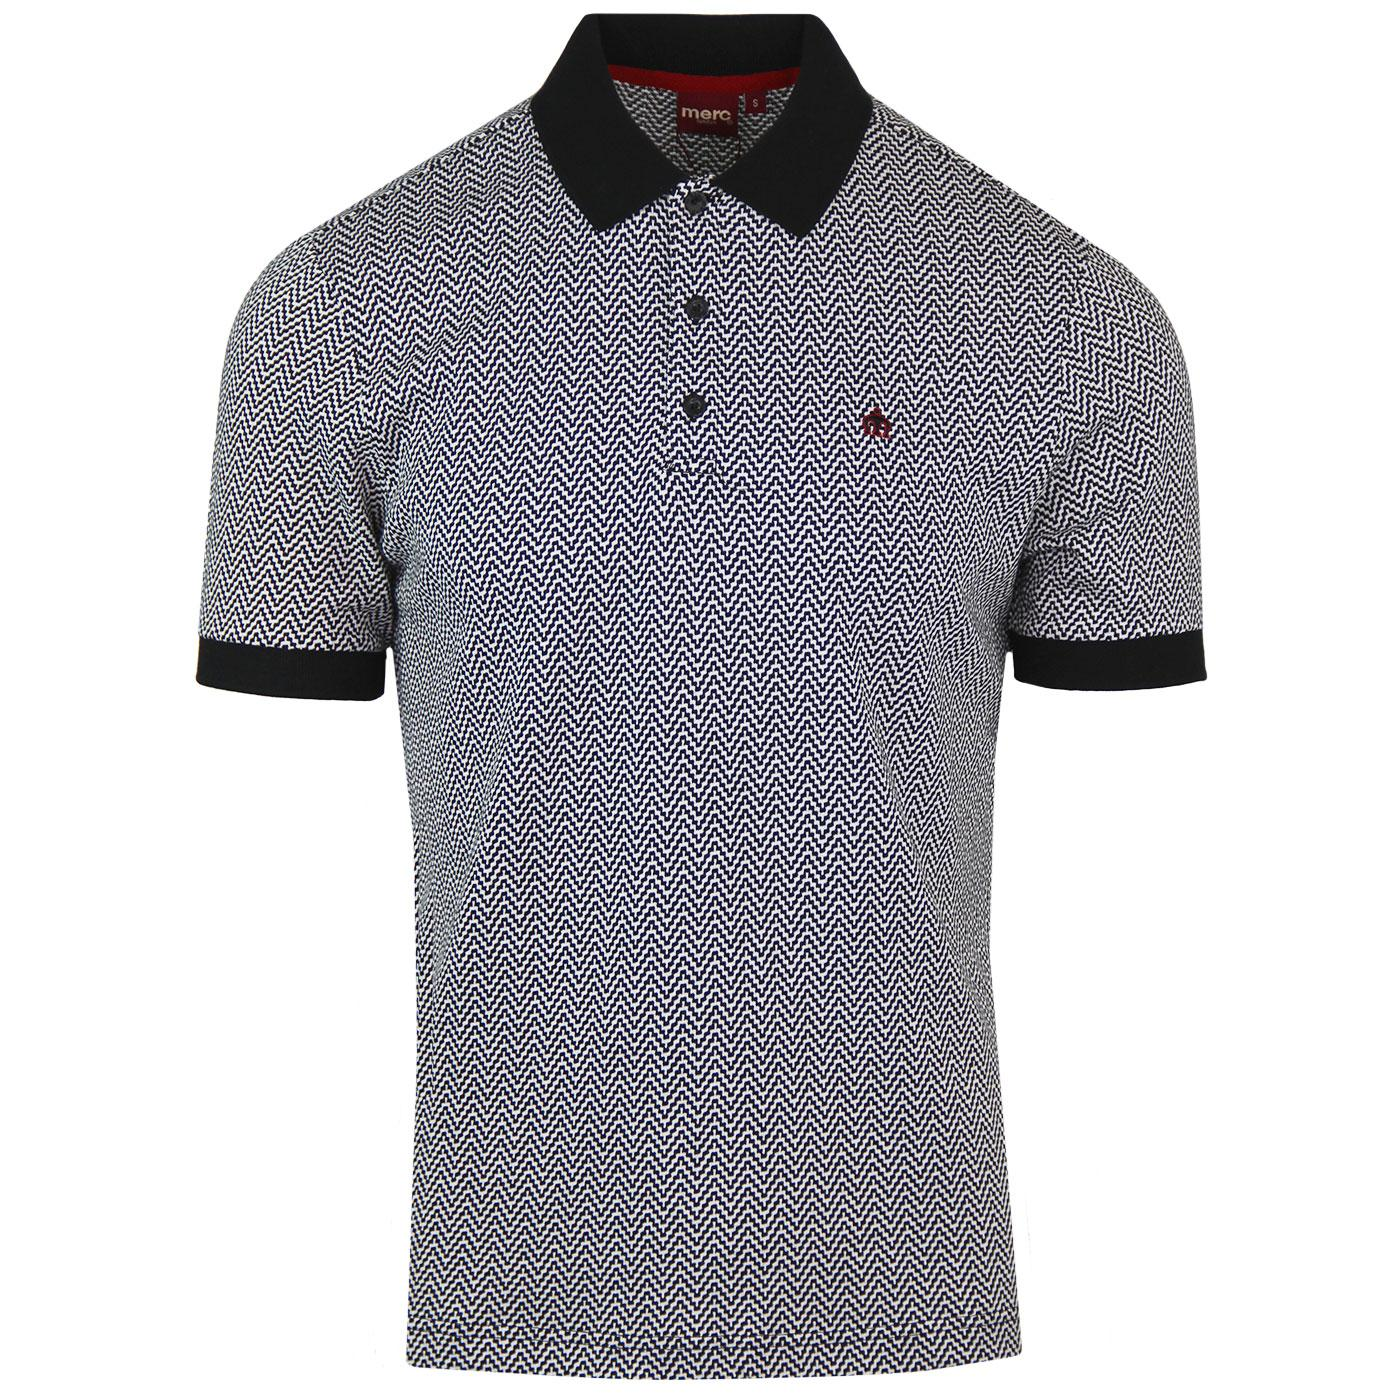 Deptford MERC Mod Op Art Jacquard Zig-Zag Polo Top